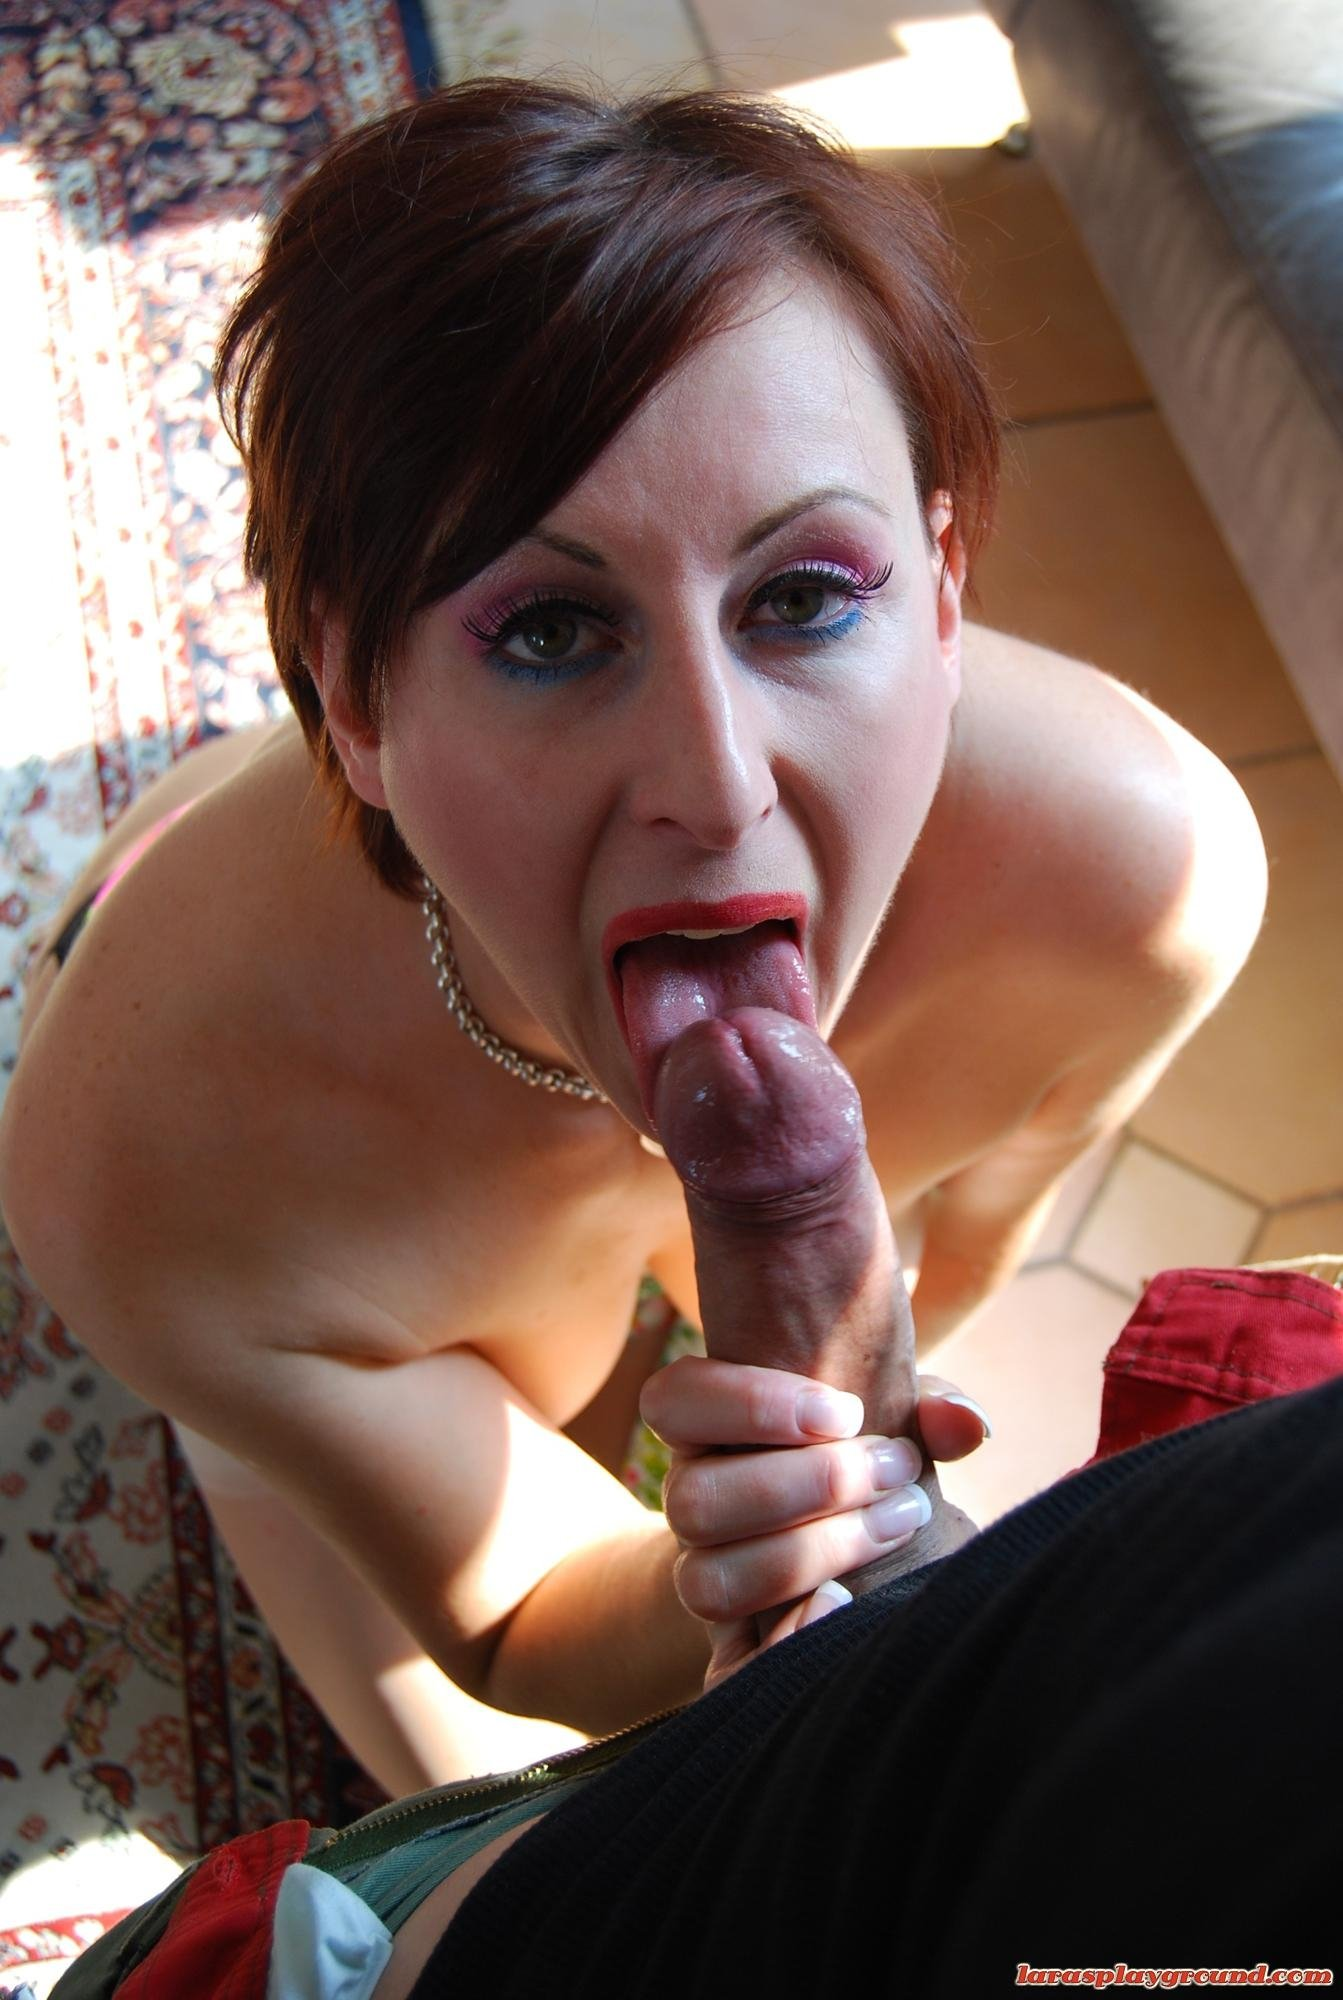 Hot wife seceded young boy